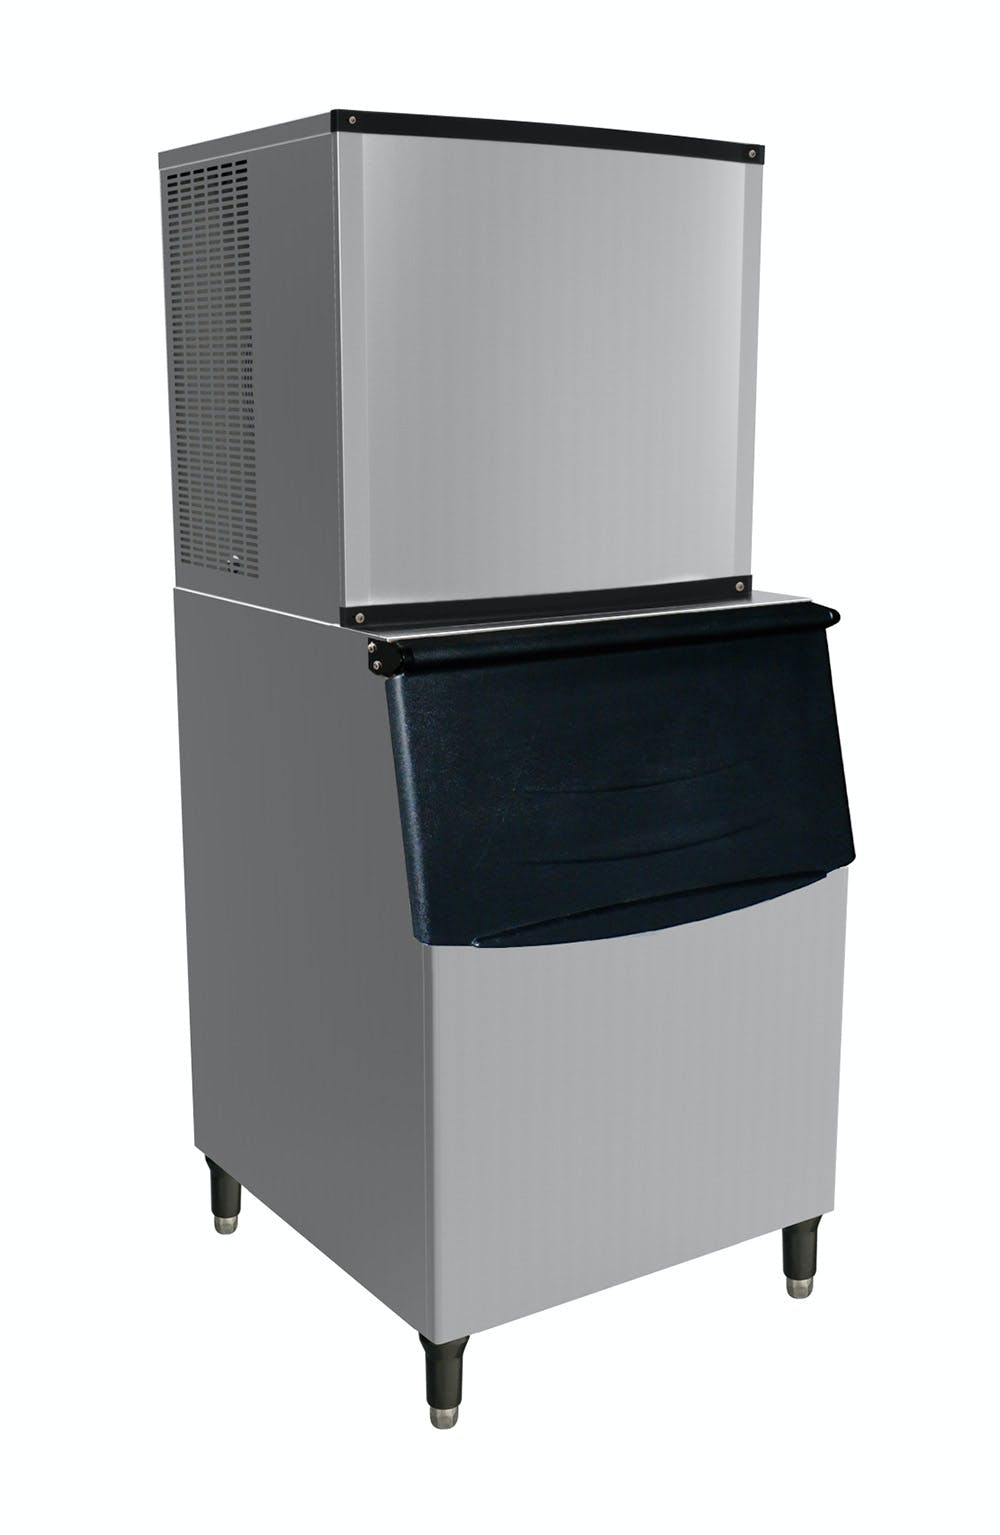 Valpro VPIM1000 - 1000 lbs. Full Cube Ice Maker - Air Cooled - 400 lbs. Ice Bin Included